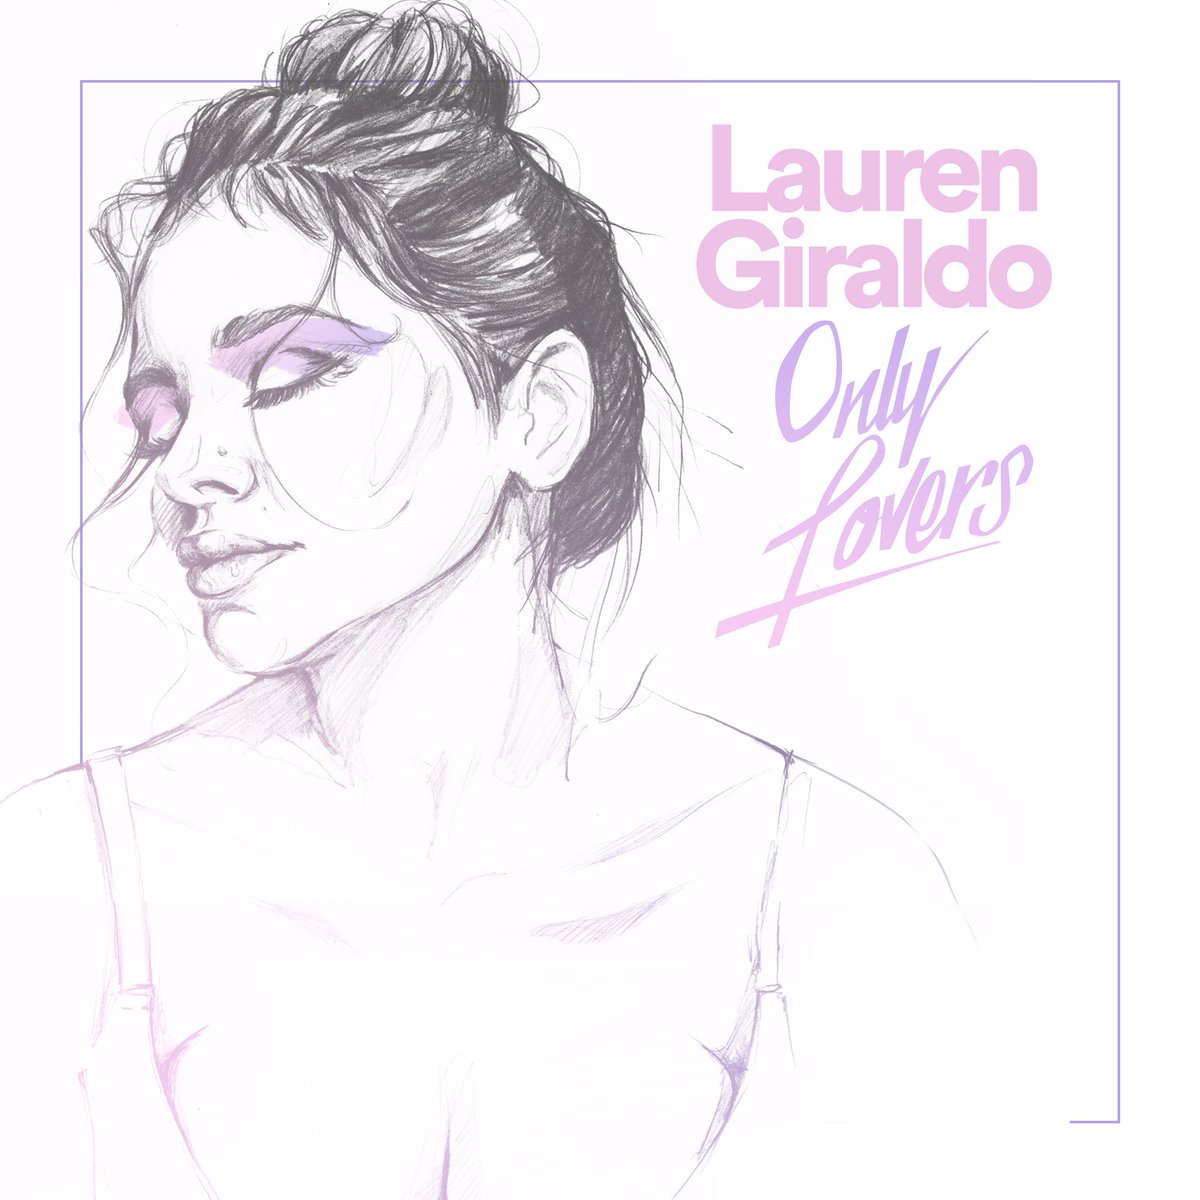 'Only Lovers' is available for pre-order on @iTunes 💜 https://t.co/ls6...